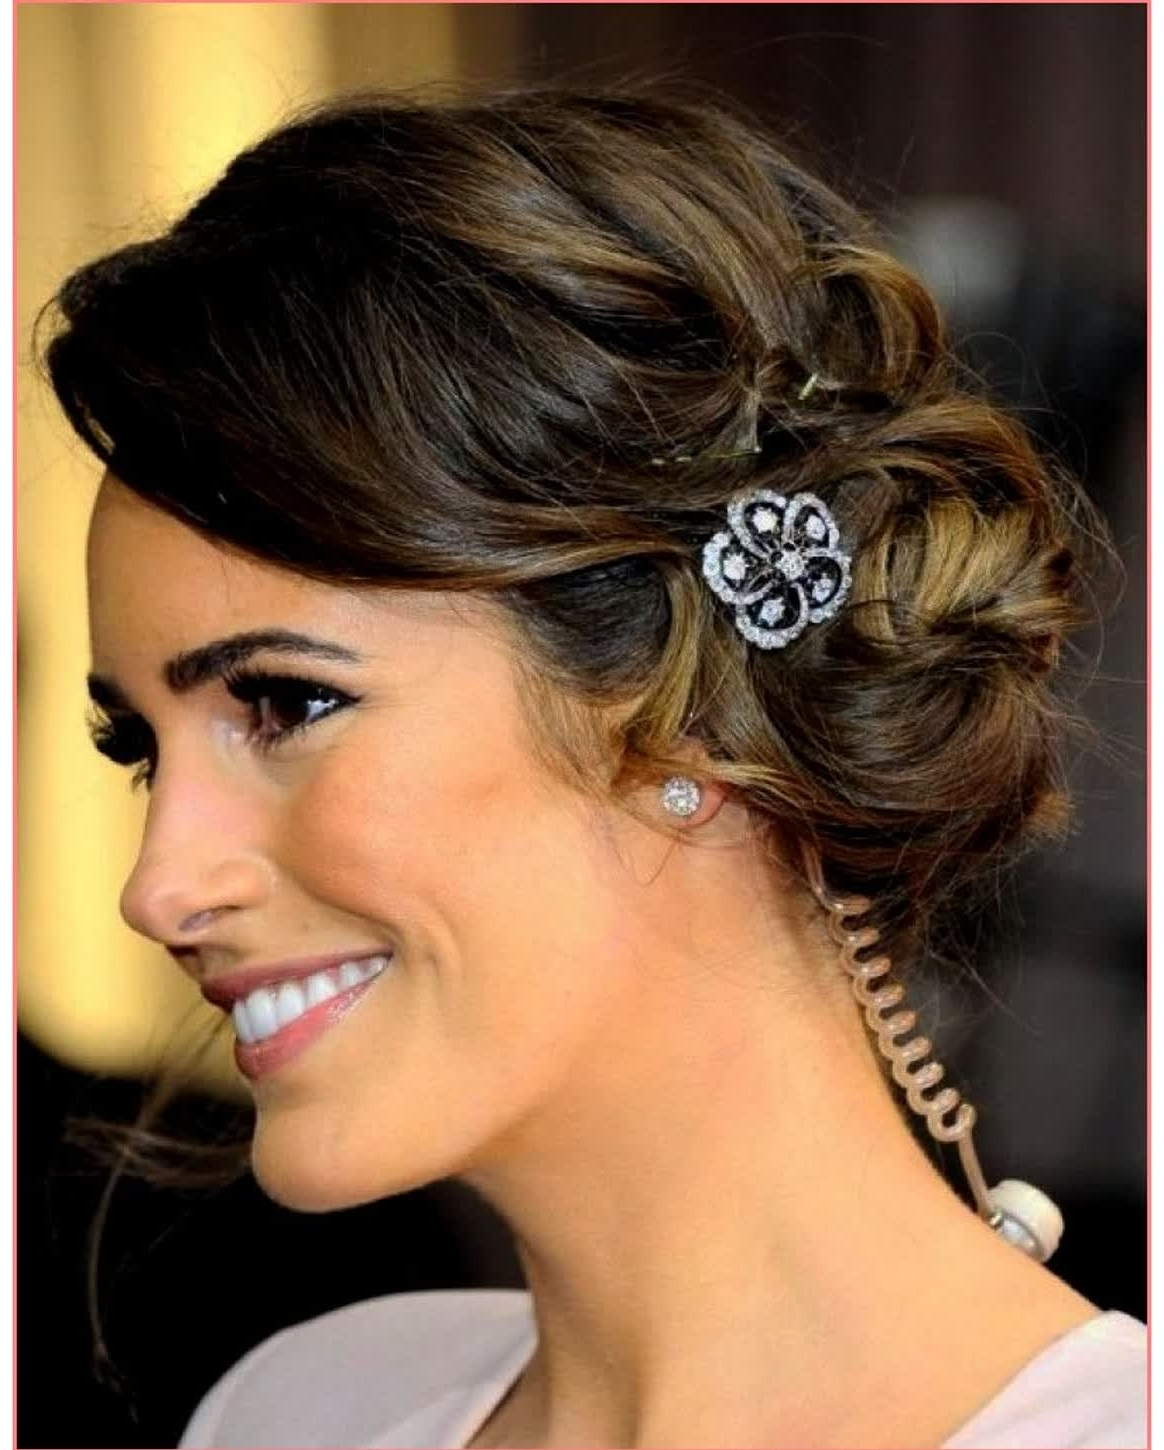 Fashionable Wedding Hairstyles For Round Face Pertaining To Cute Hairstyles Wedding Hairstyles For Short Hair Round Face – Best (View 12 of 15)